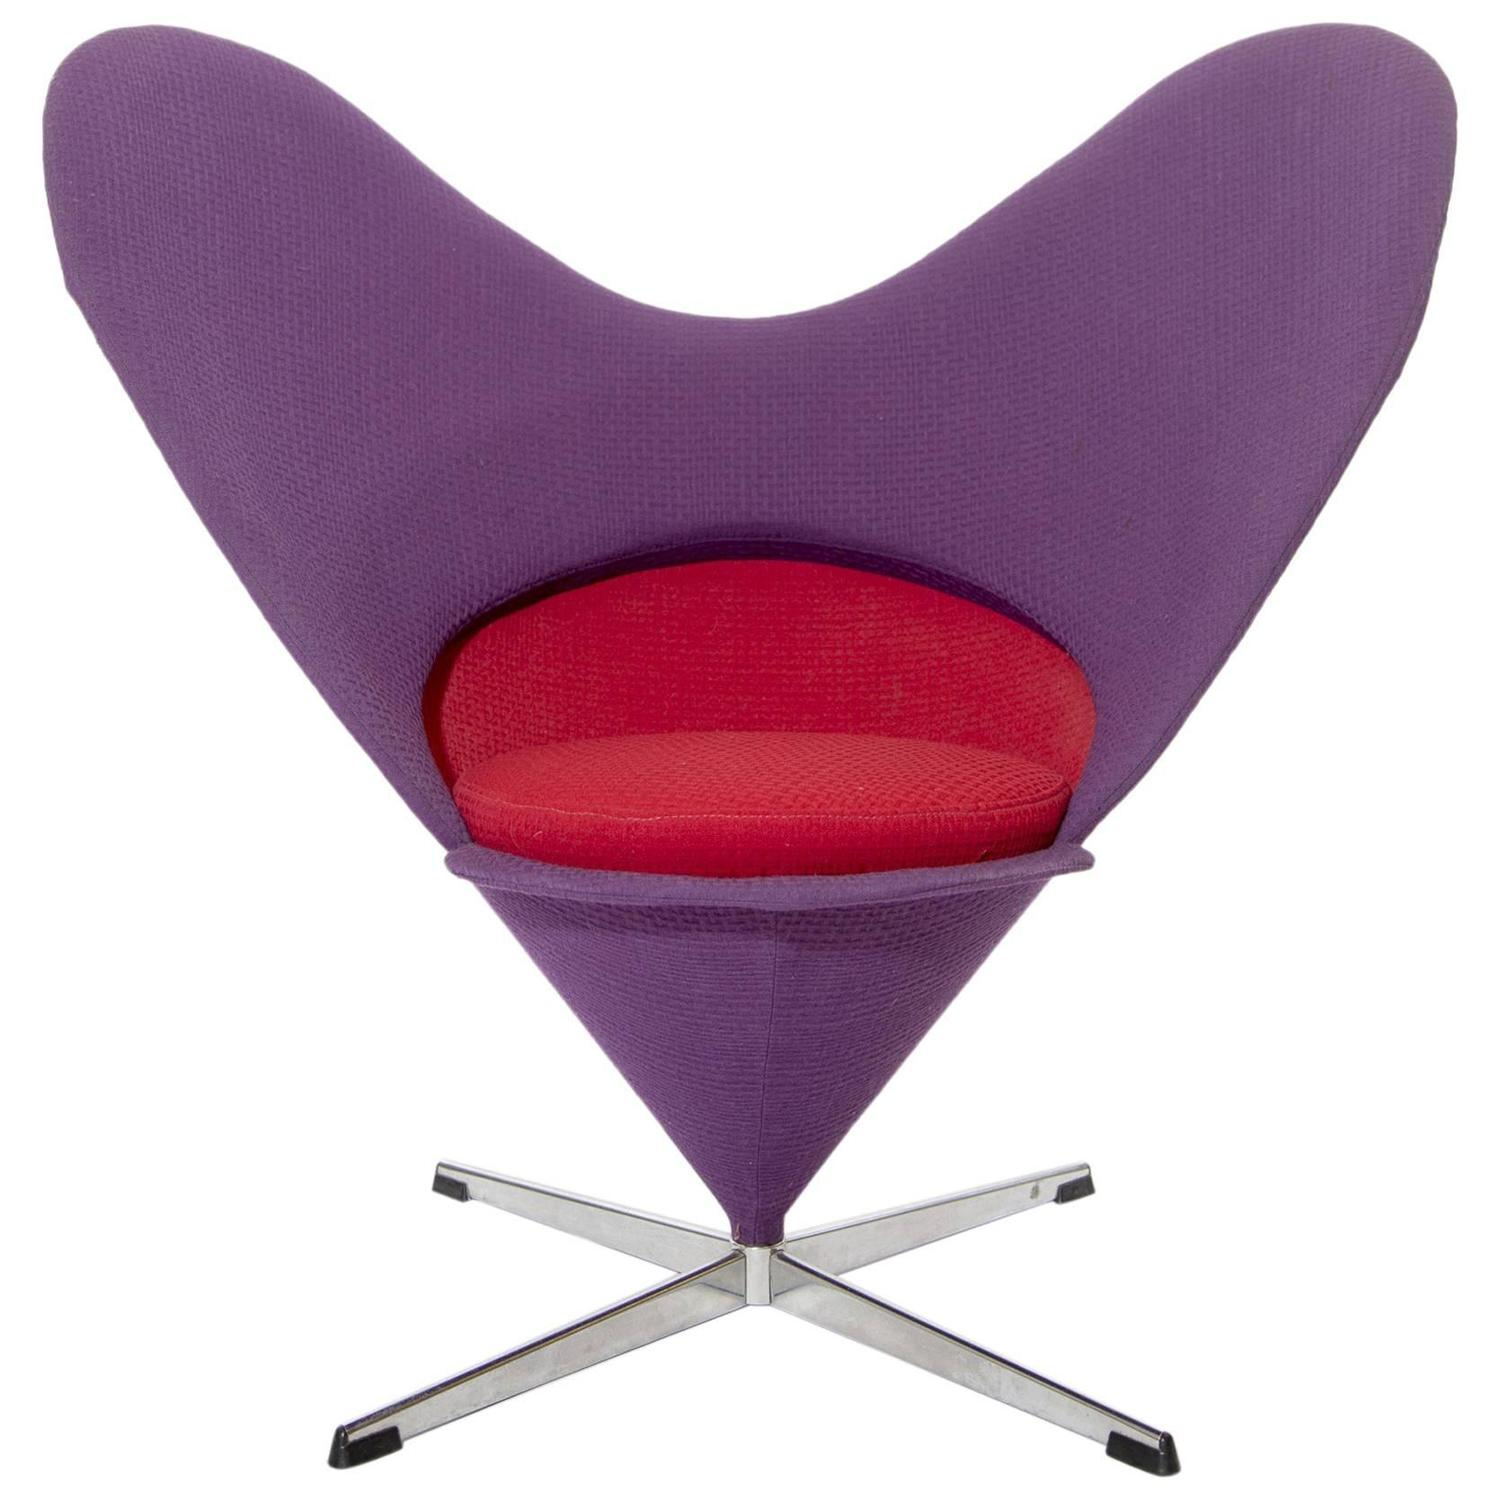 Heart Chair Verner Panton Heart Chair For Sale At 1stdibs